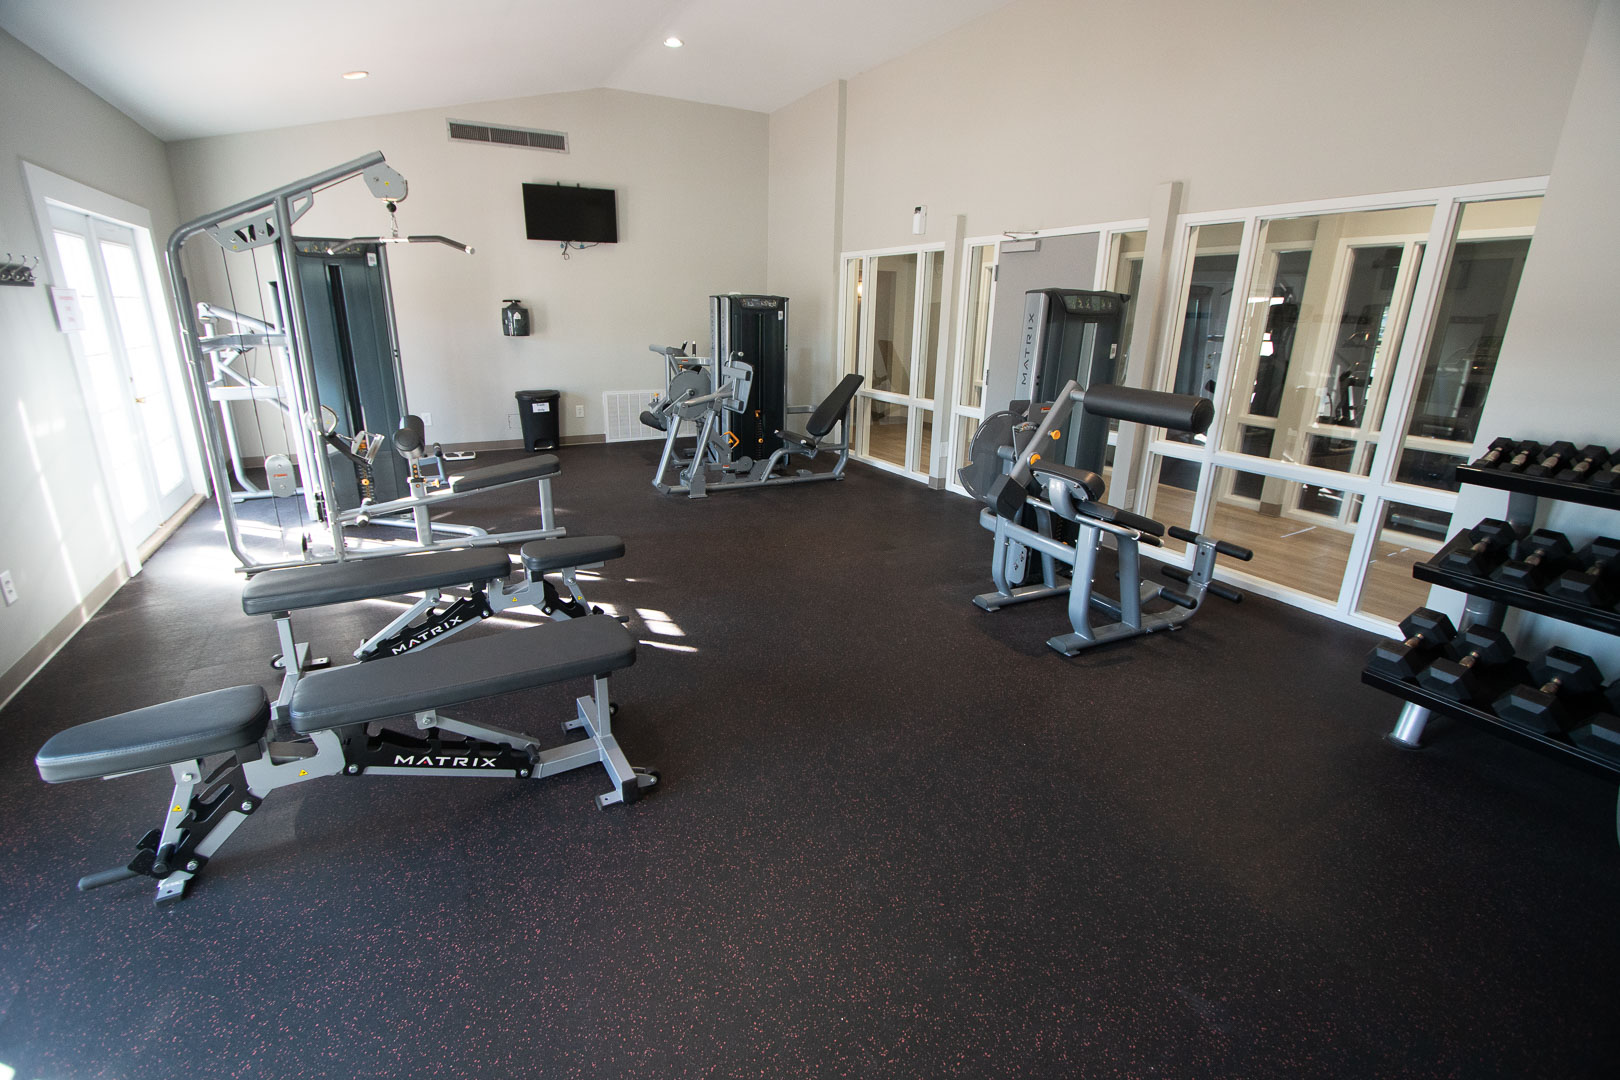 A fully equipped exercise room at VRI's Sandcastle Village in New Bern, North Carolina.